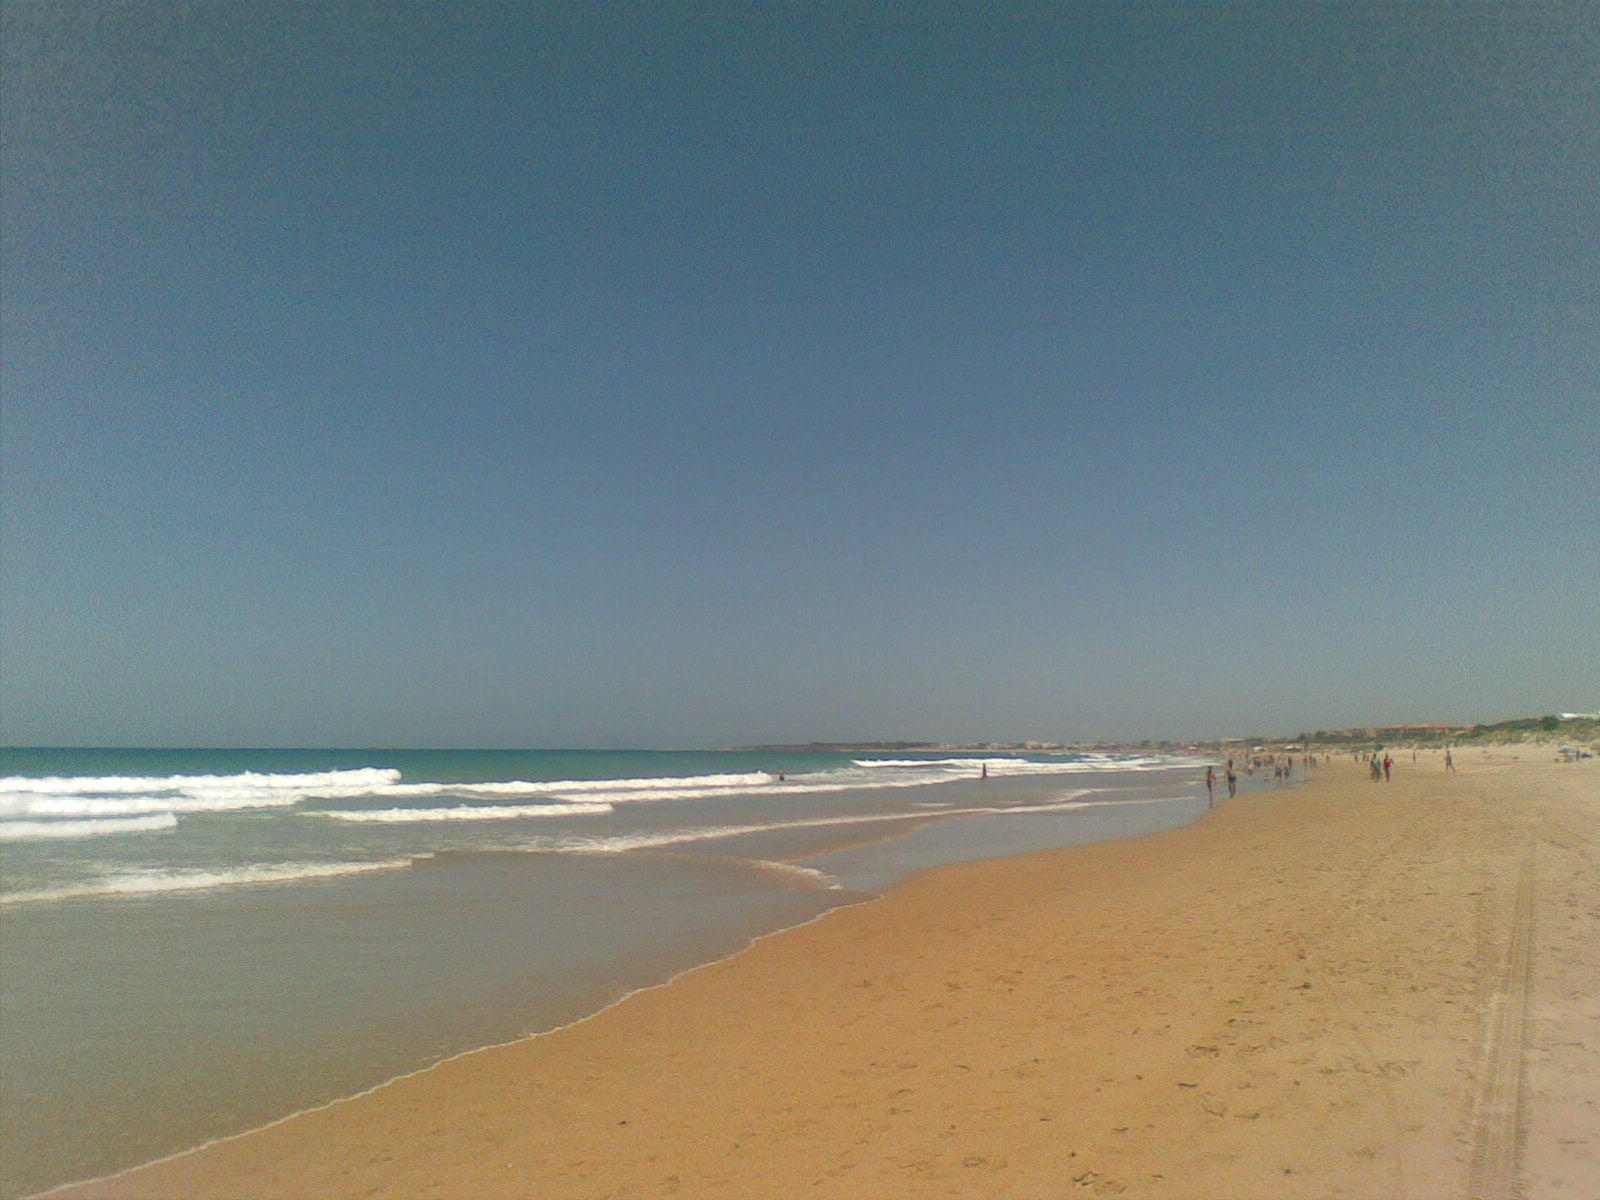 Costa en Playa de la Barrosa